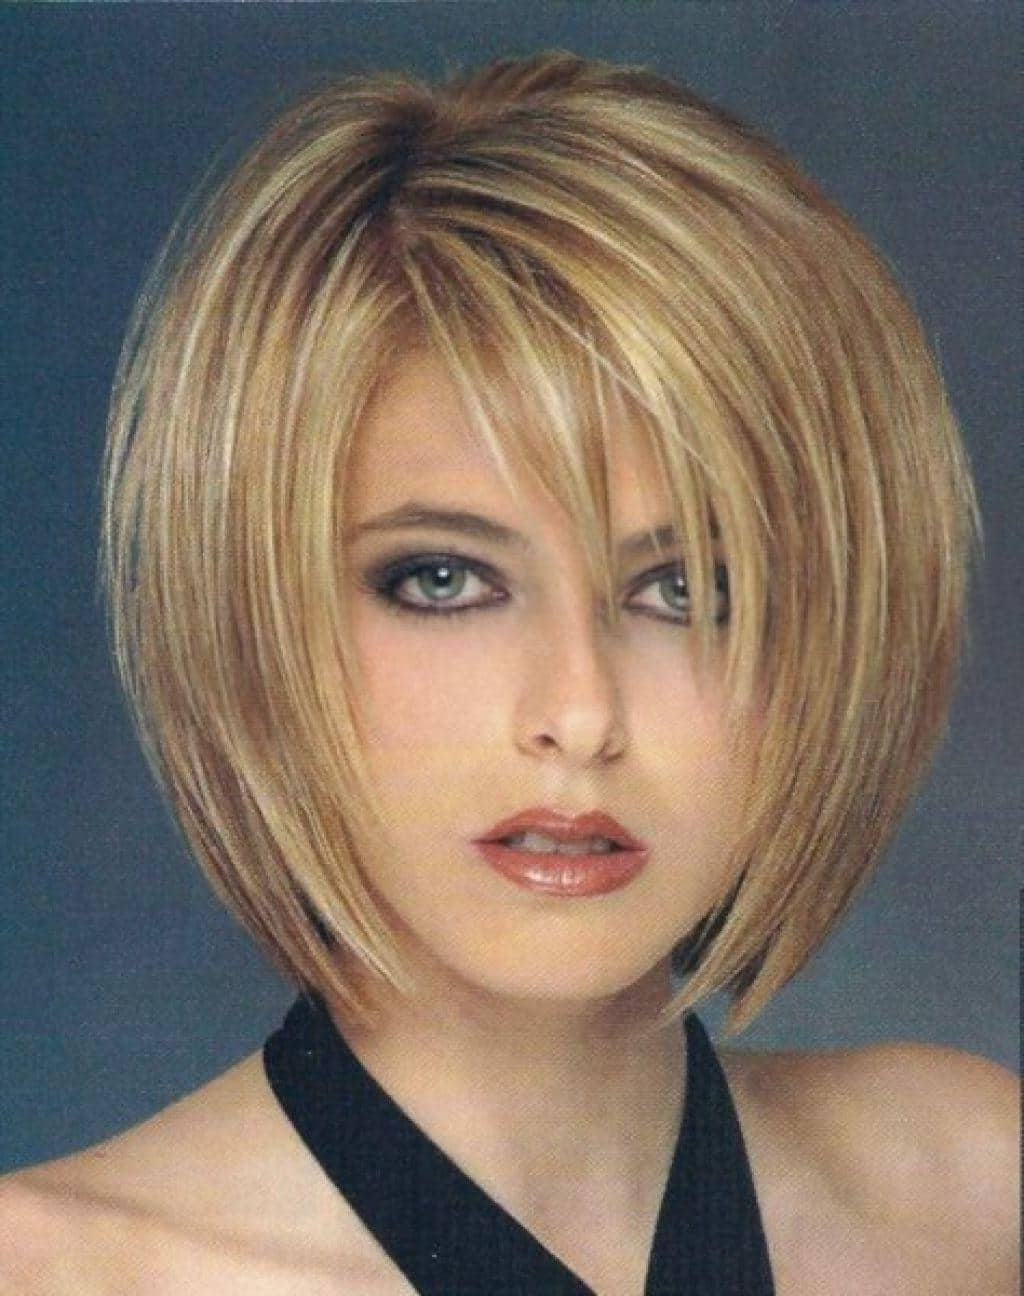 Short Bob Haircuts For Thin Hair – Short And Cuts Hairstyles Throughout Layered Bob Hairstyles For Fine Hair (View 13 of 20)